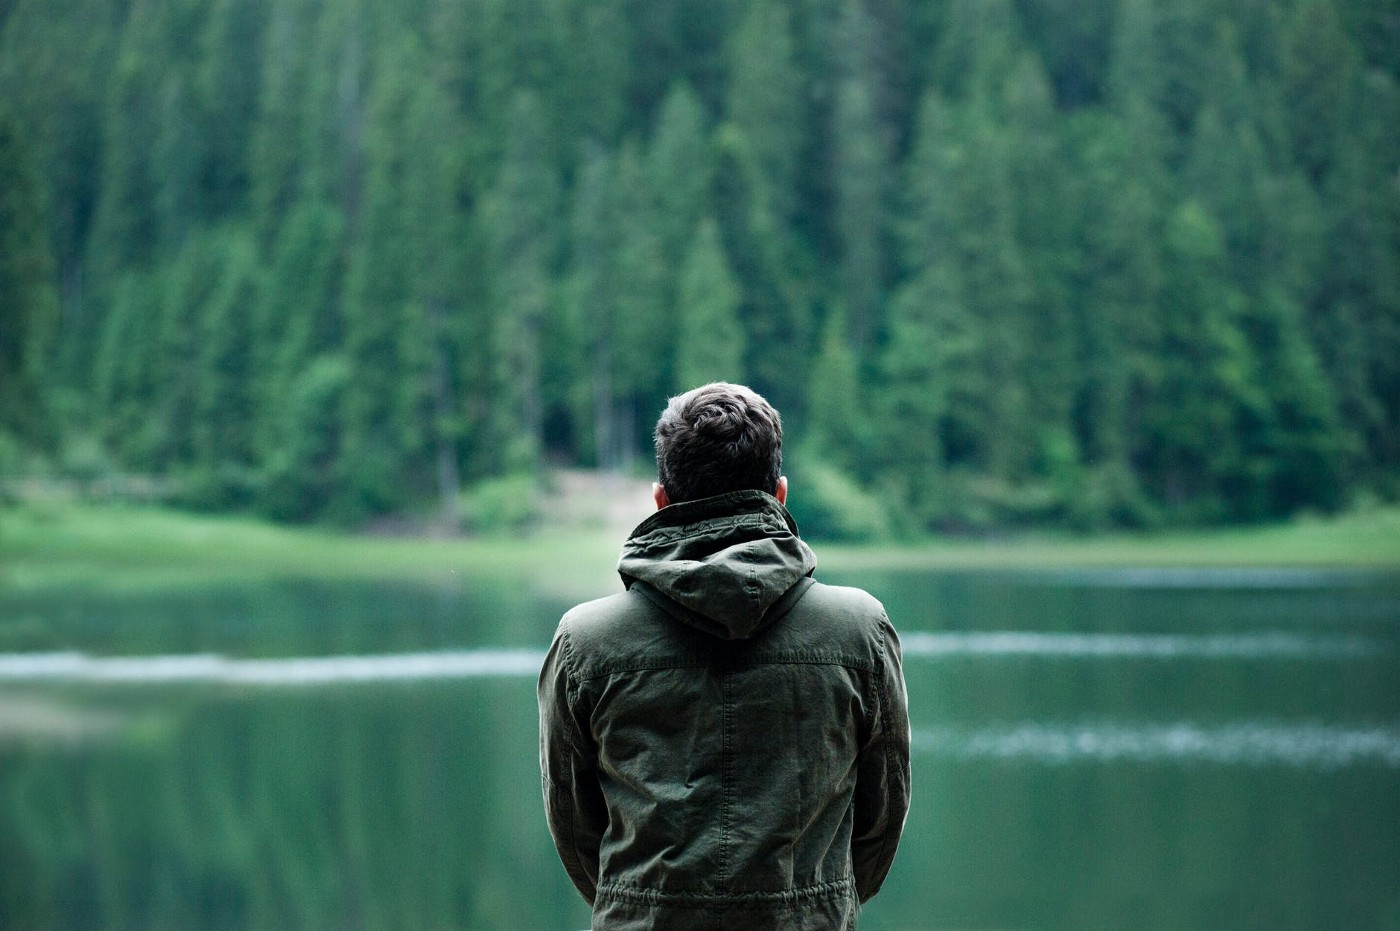 A young man looks towards a lake surrounded by woods.